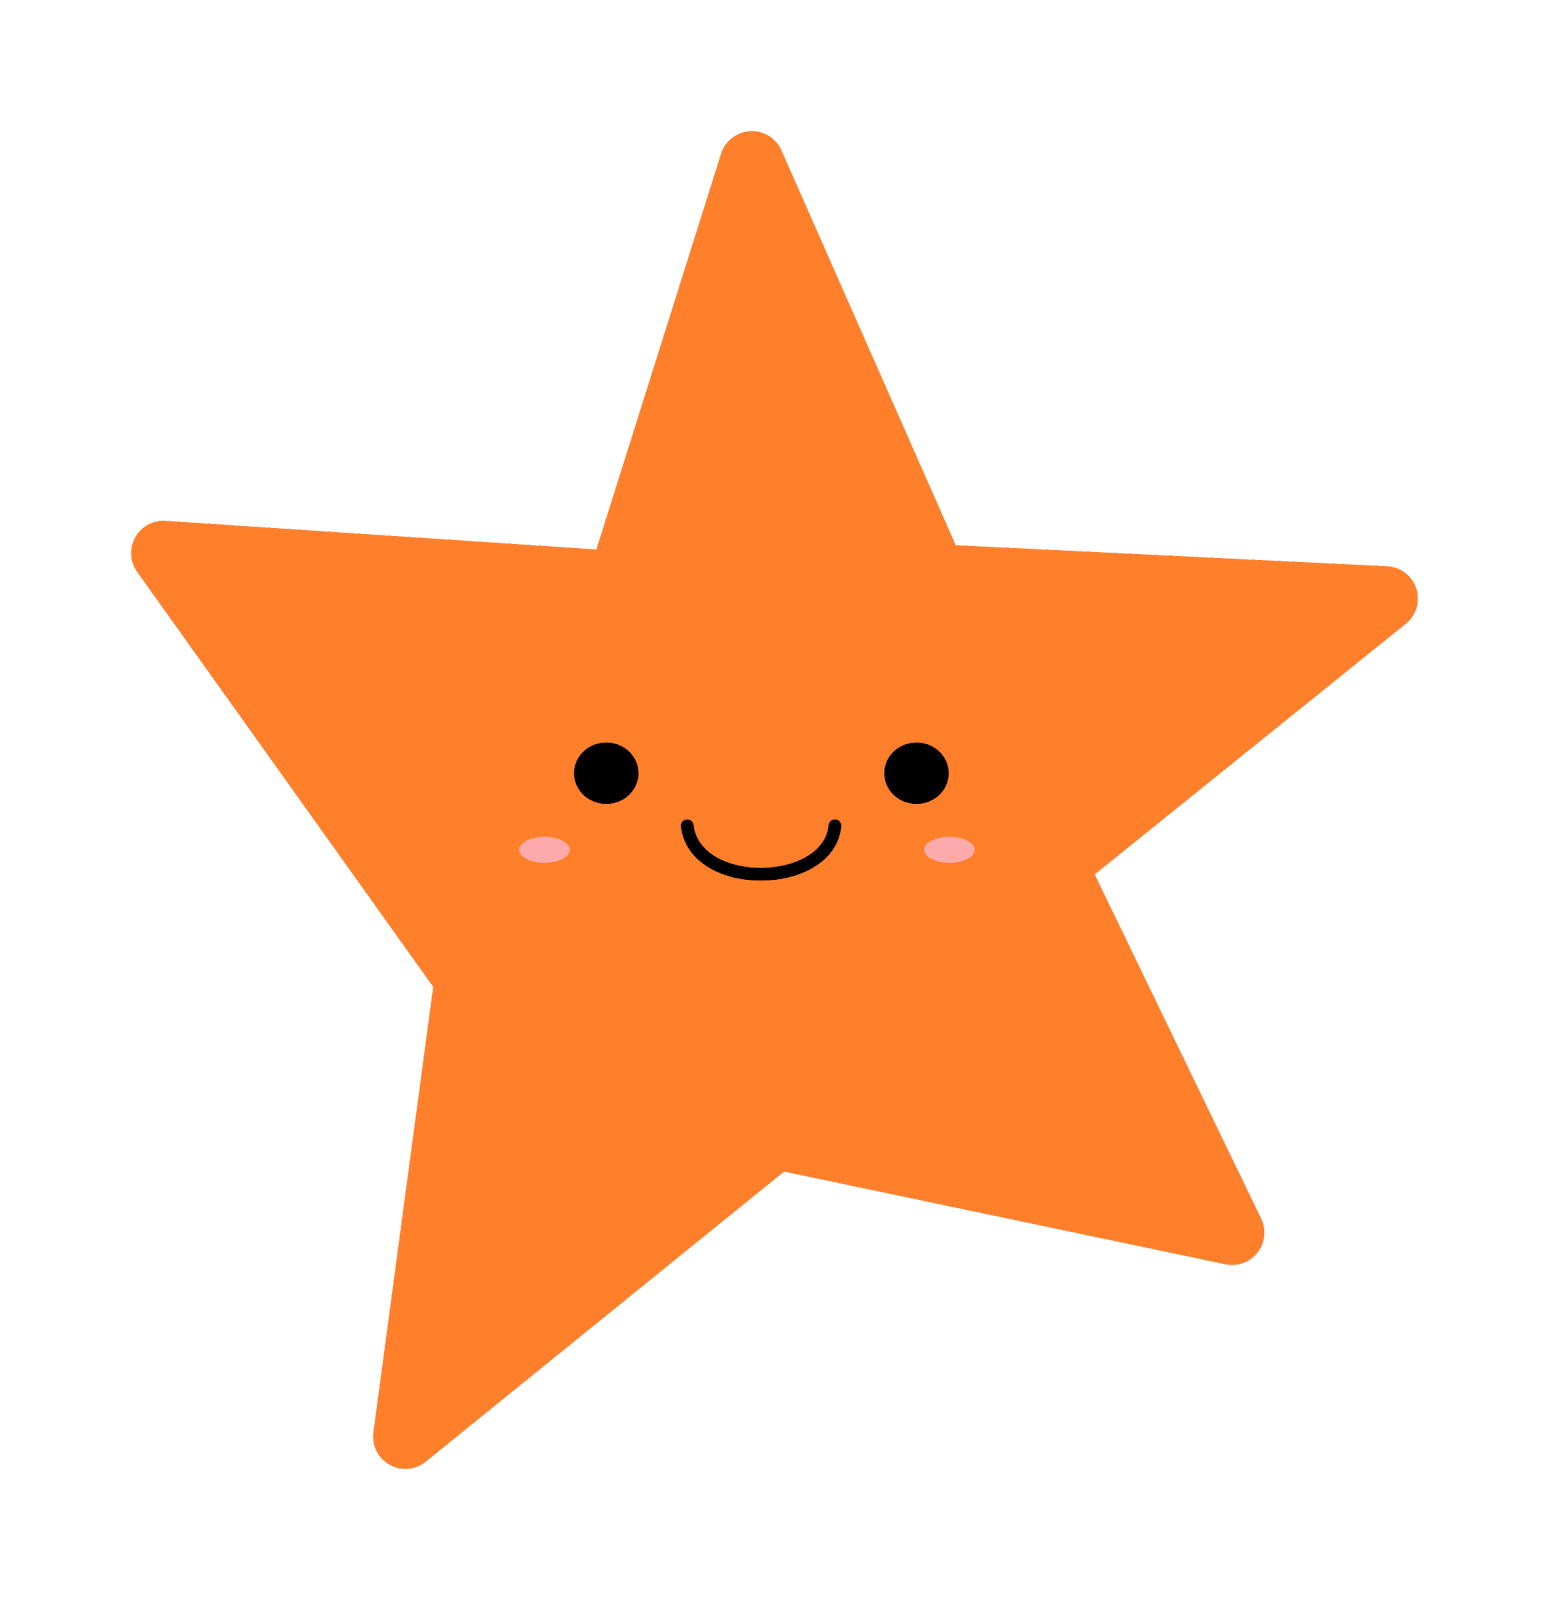 Orange Star vector clipart - Free Public Domain Stock Photo - CC0 ...